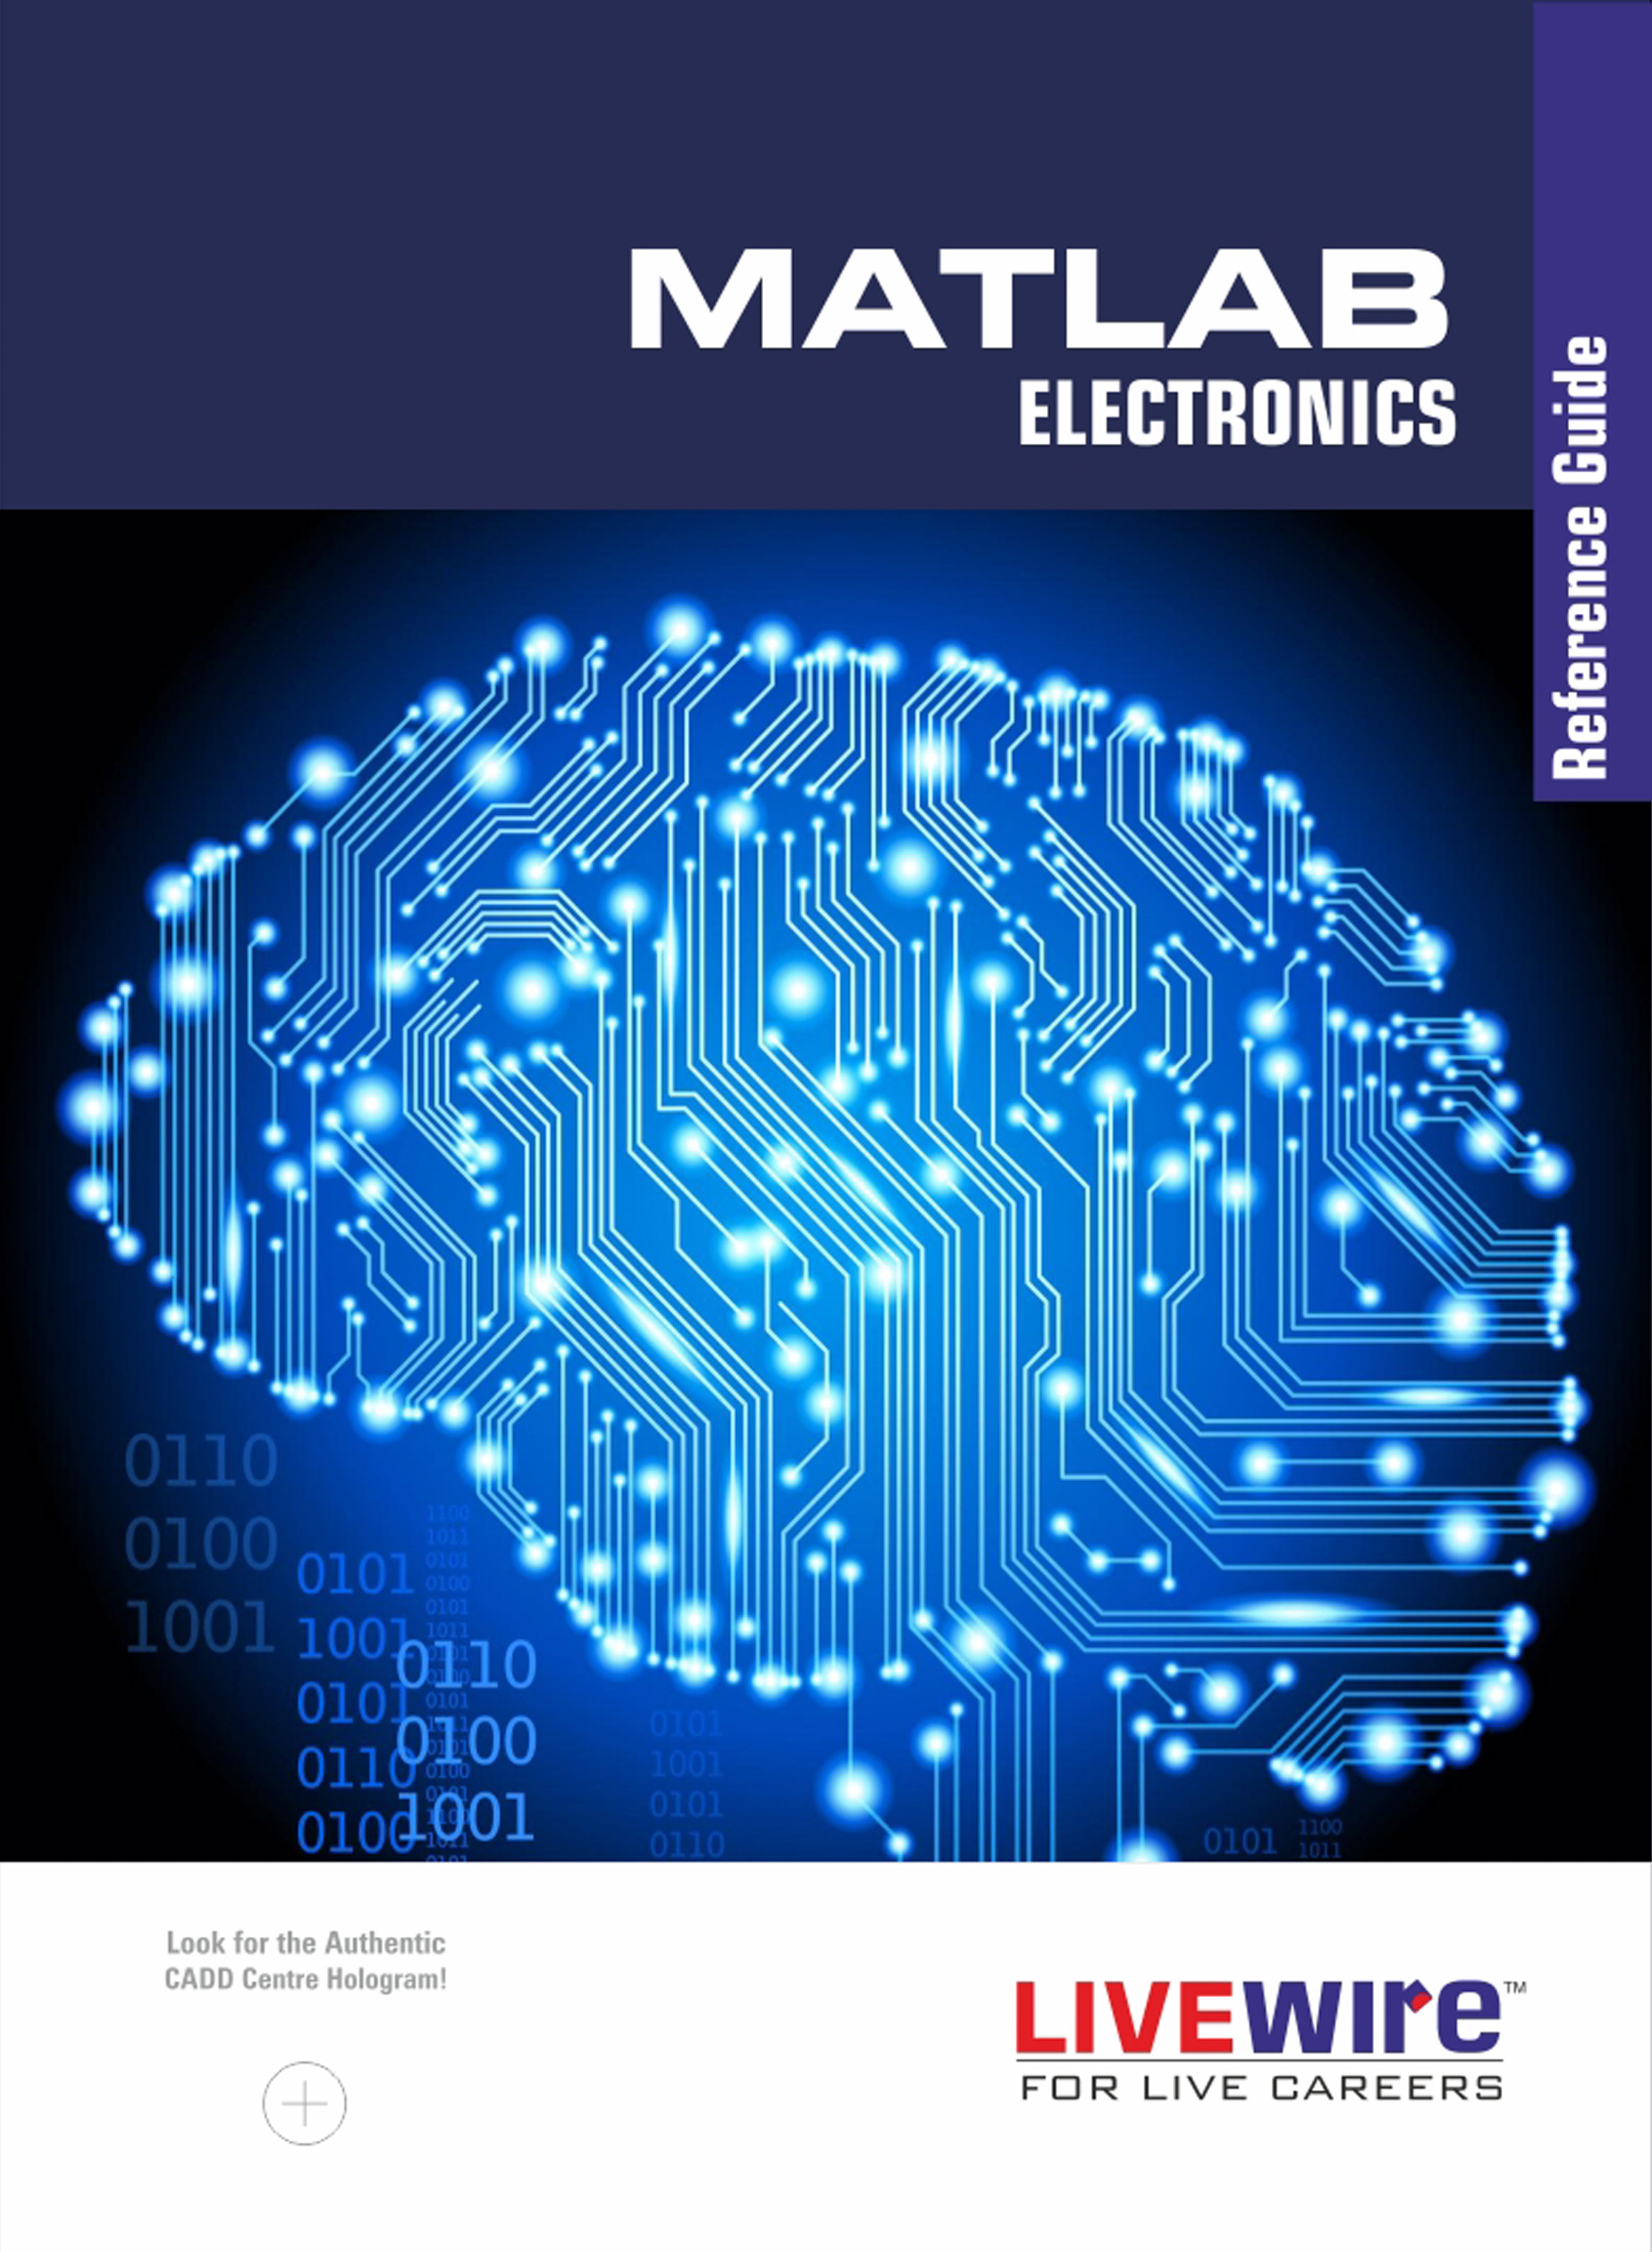 Matlab for Electronics Training Program | Learn Simulink Course